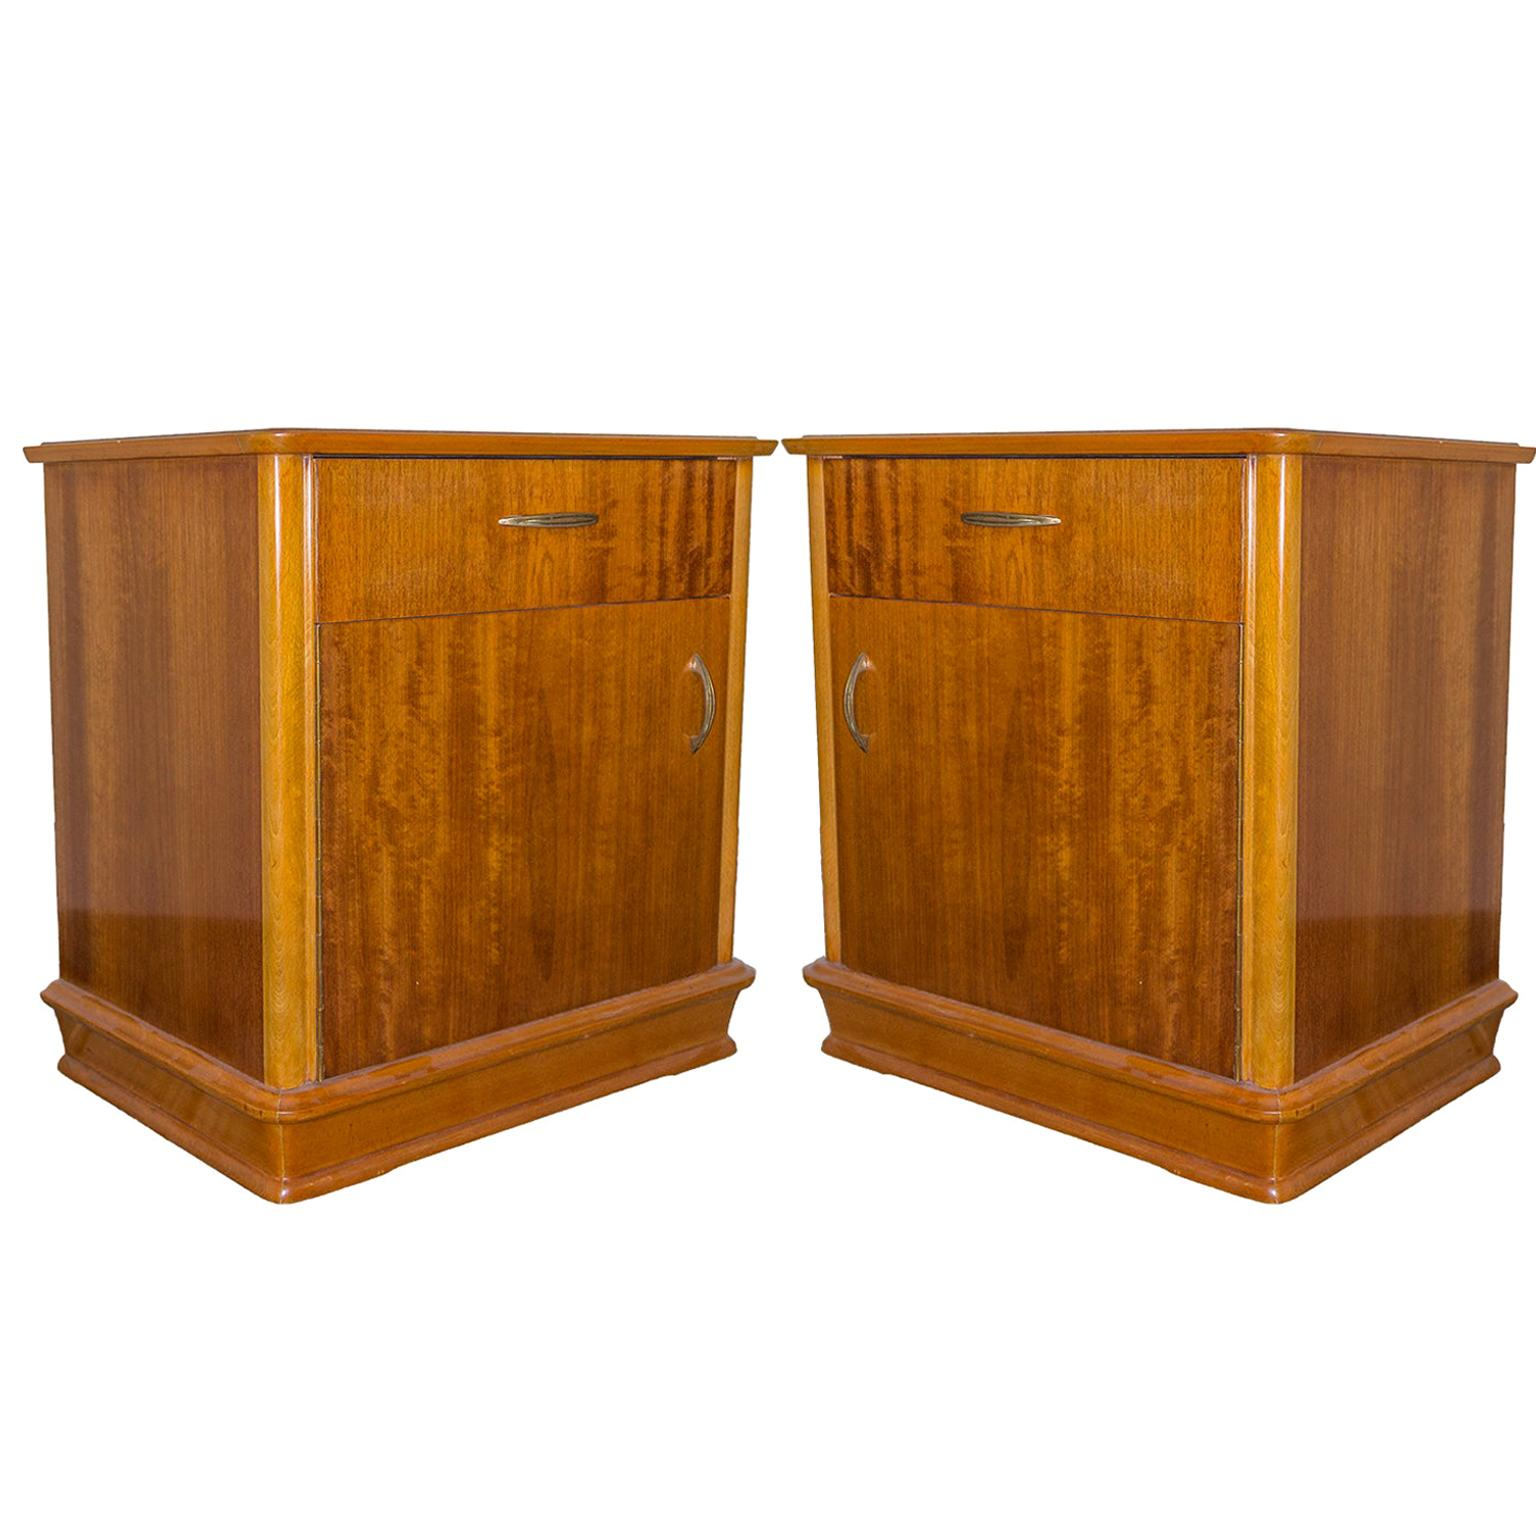 Pair of French Midcentury Nightstands